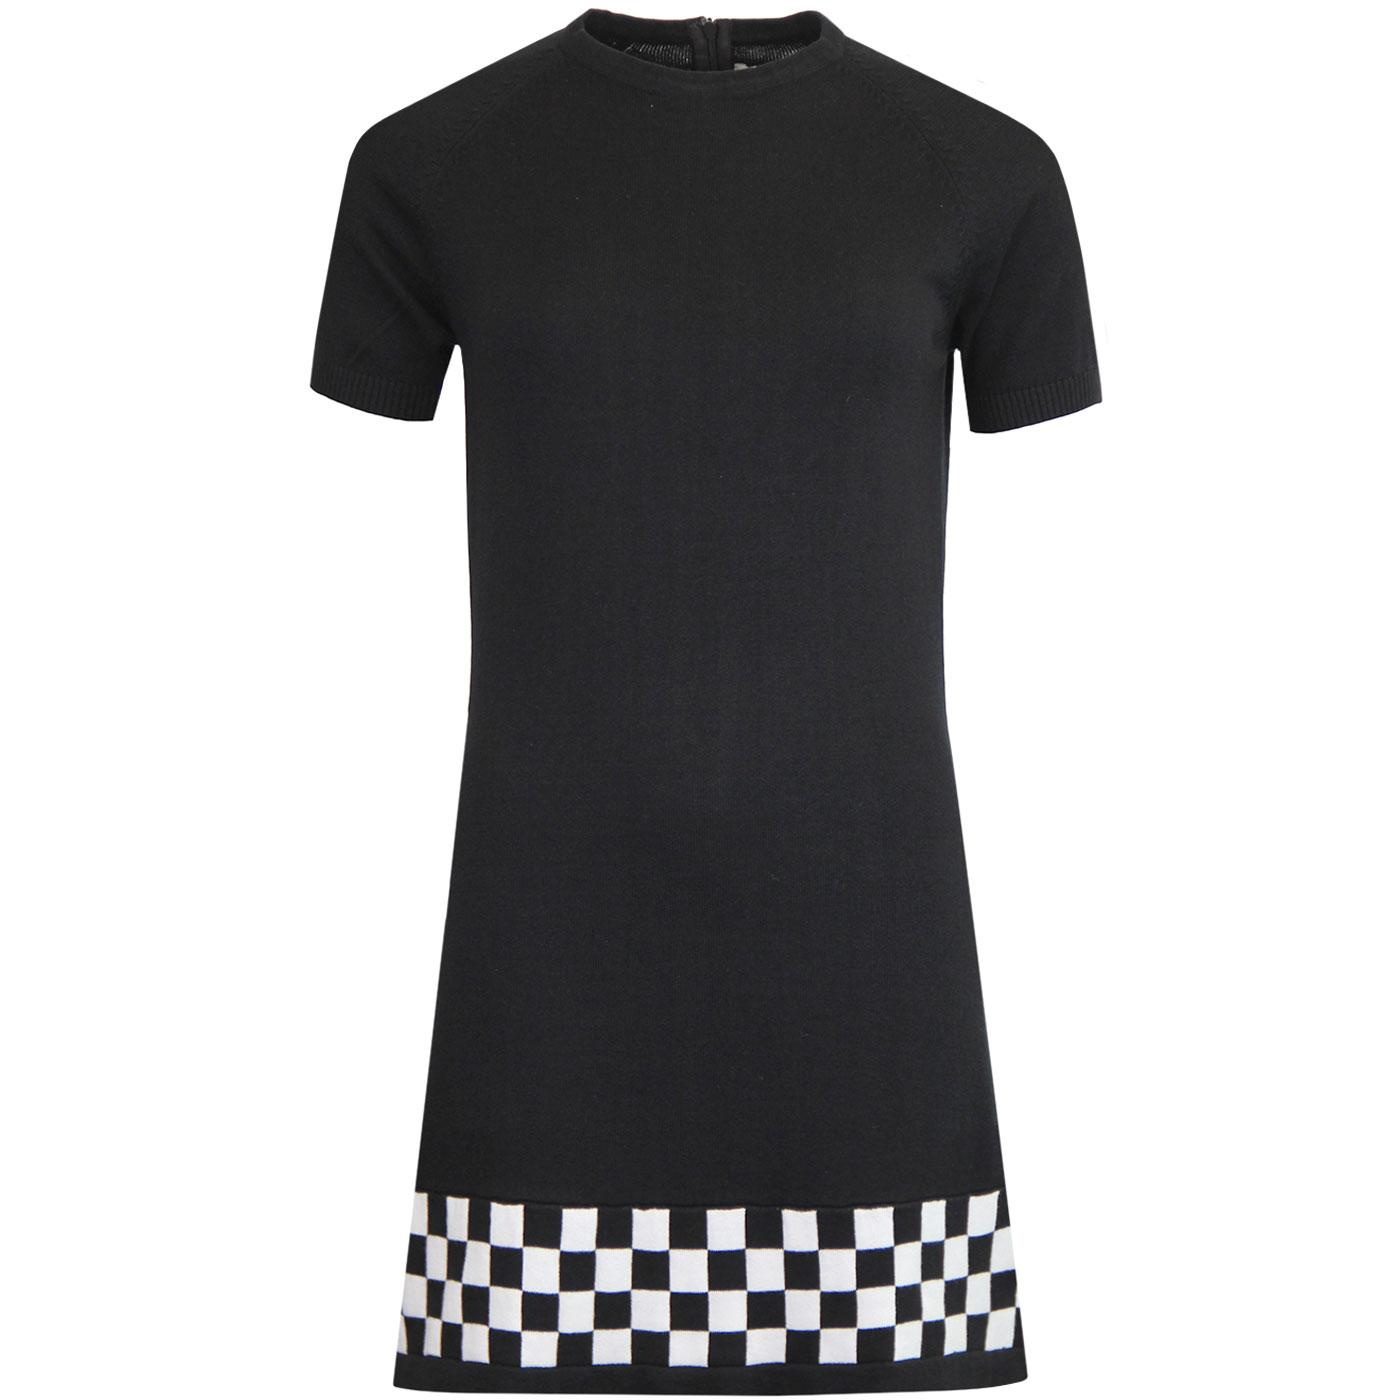 Nicole MADCAP ENGLAND Mod Knit Checkboard Dress